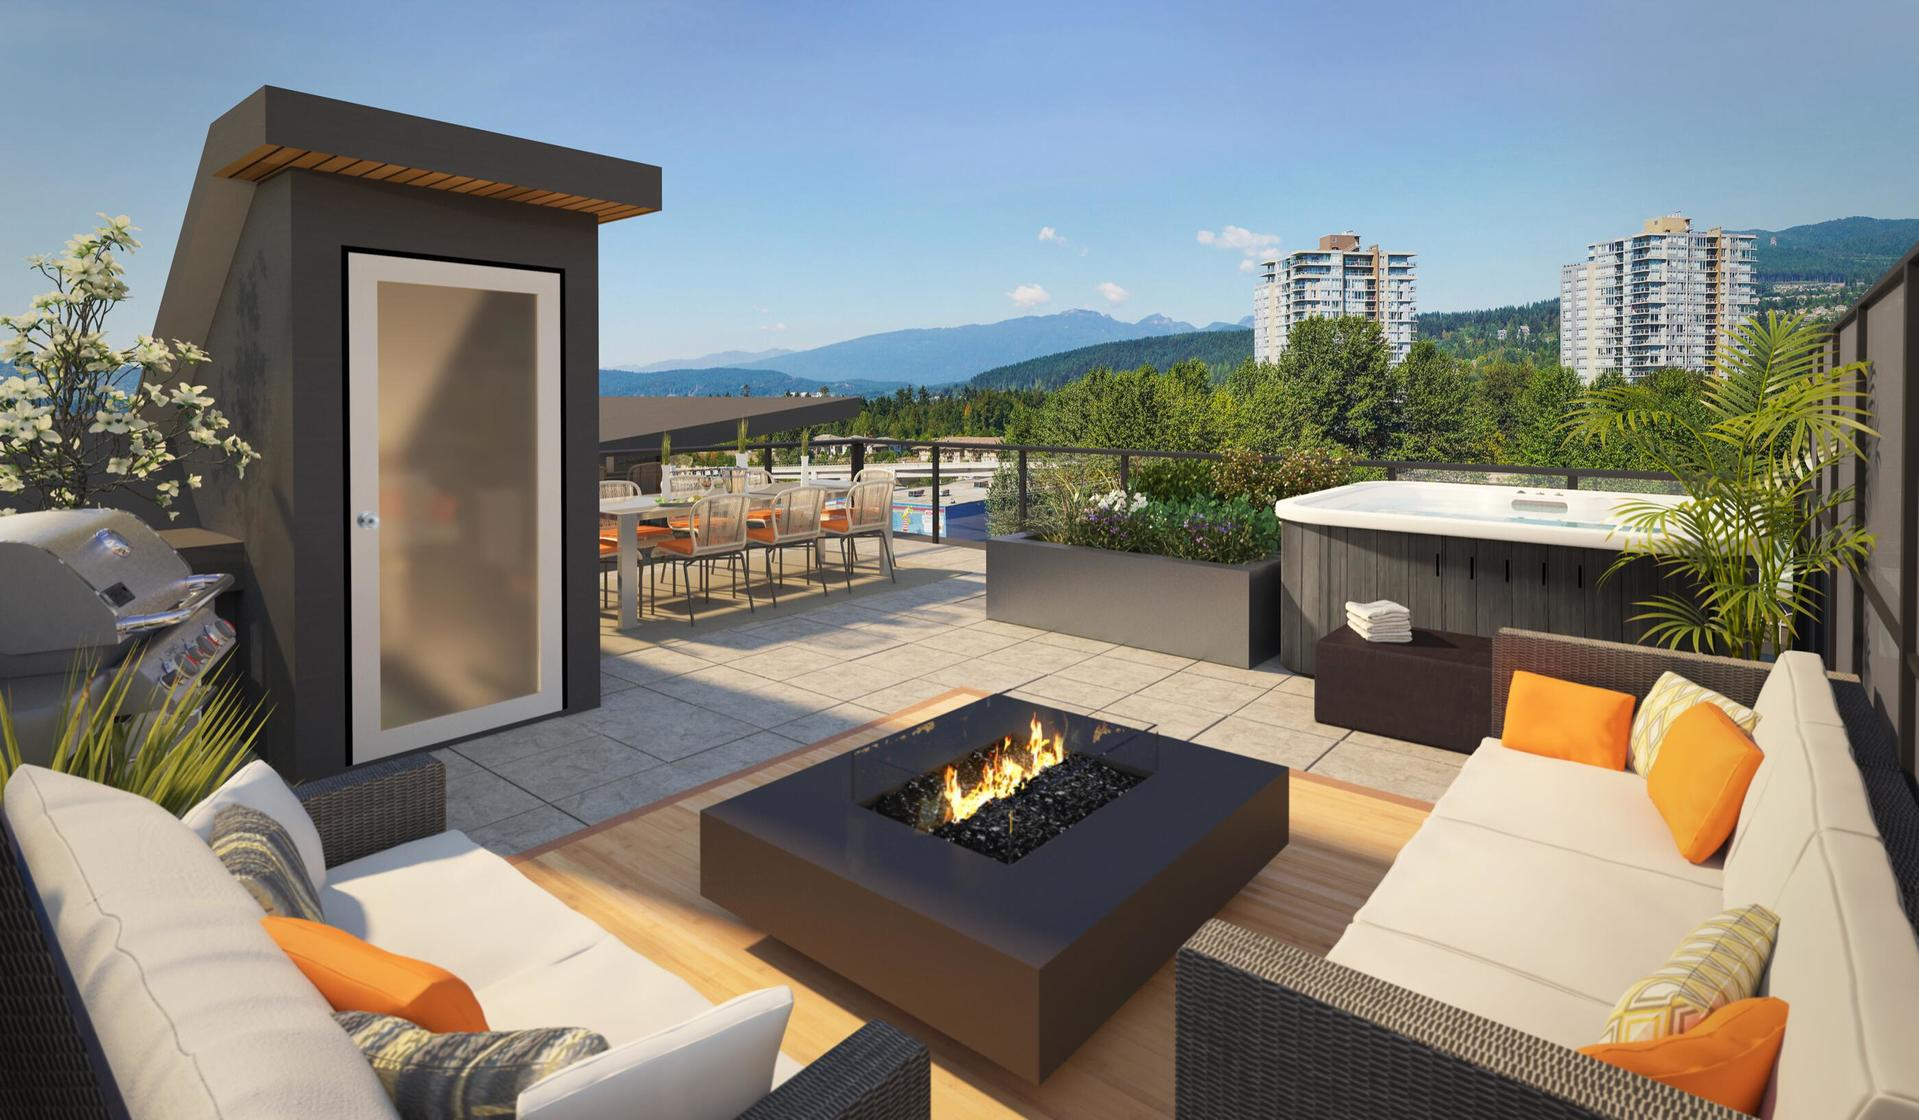 Clyde Penthouse Homes with Roof Top Deck, hot tub optional at Clyde (3227 St Johns Street, Port Moody Centre, Port Moody)